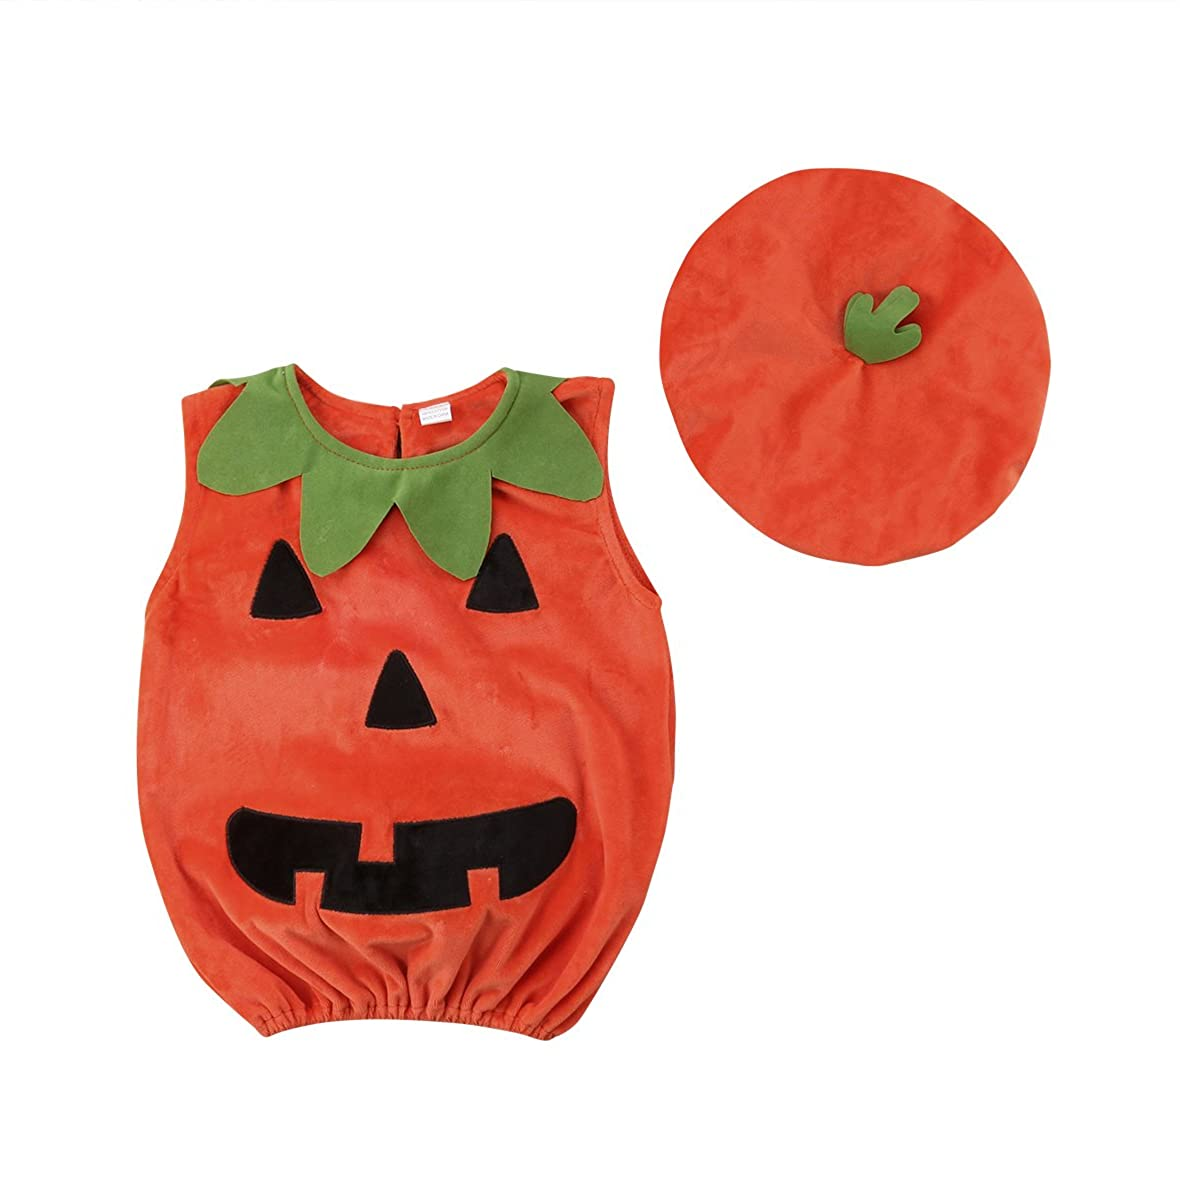 Infant Baby Girls Boys Pumpkin Costumes Romper Bodysuit Costume for Halloween Cosplay Party Christmas Fancy Dress Outfit